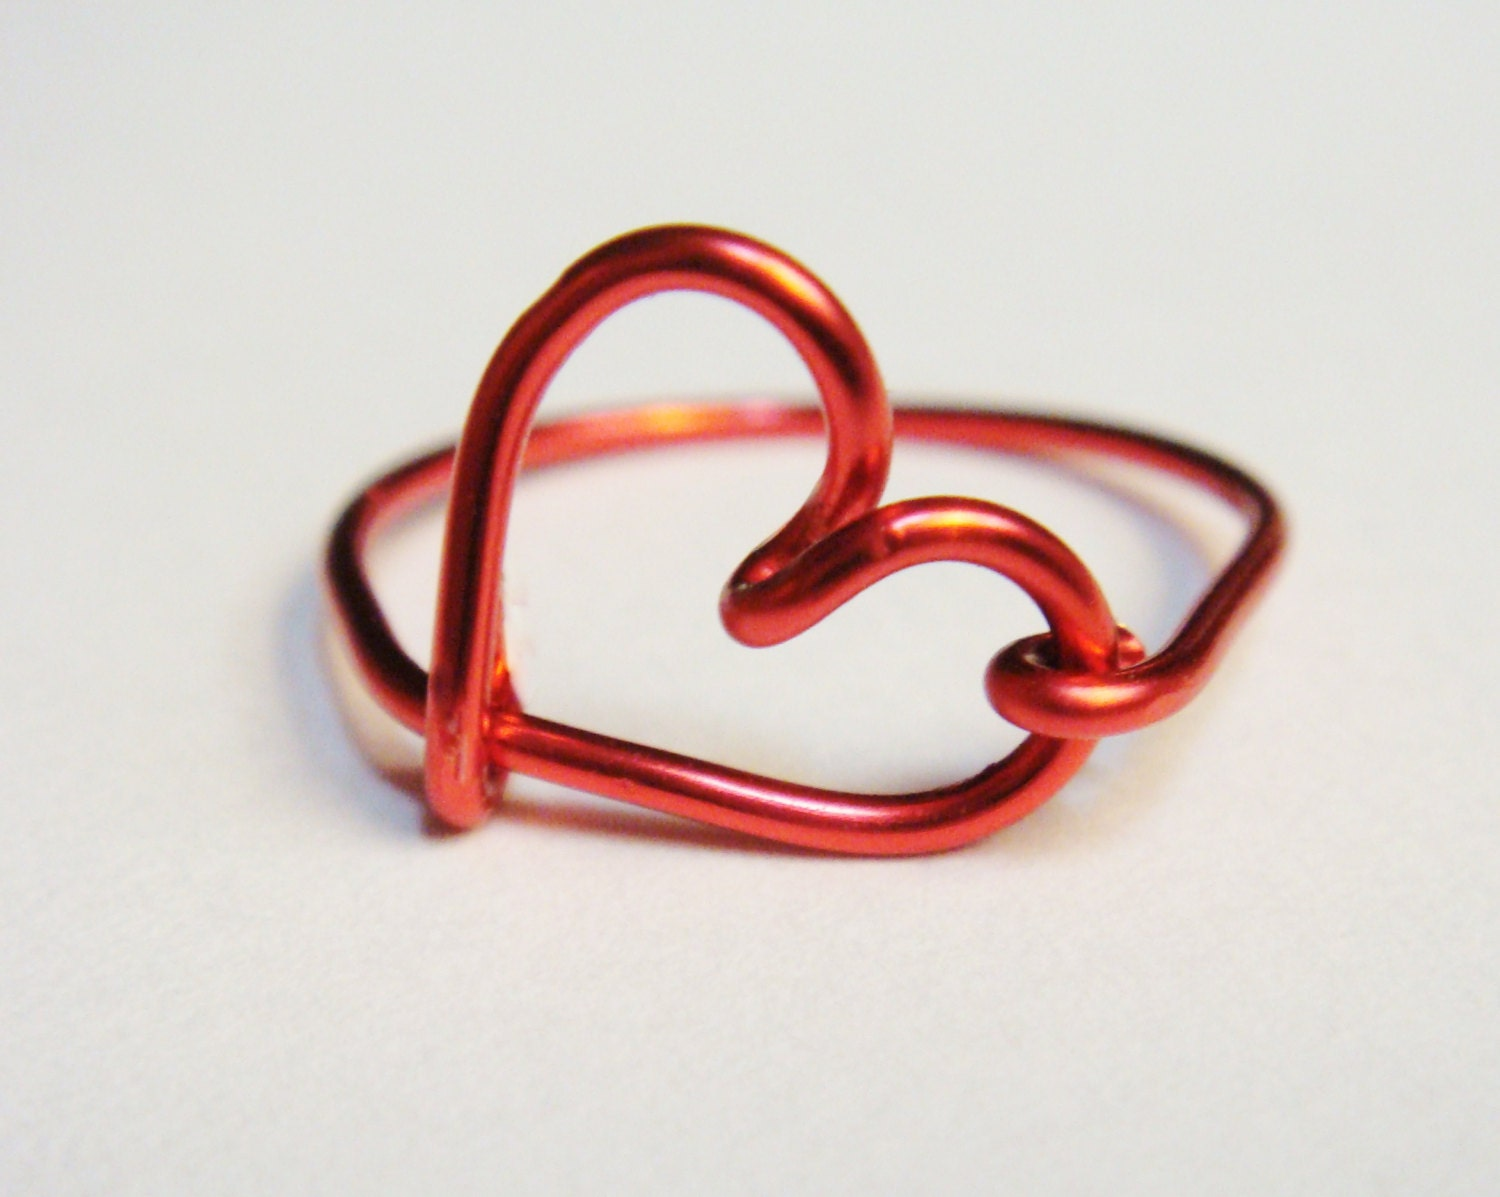 Valentines Ring   Valentines Jewelry  Heart Rings   Red Heart Ring - SimplyEarcuffs